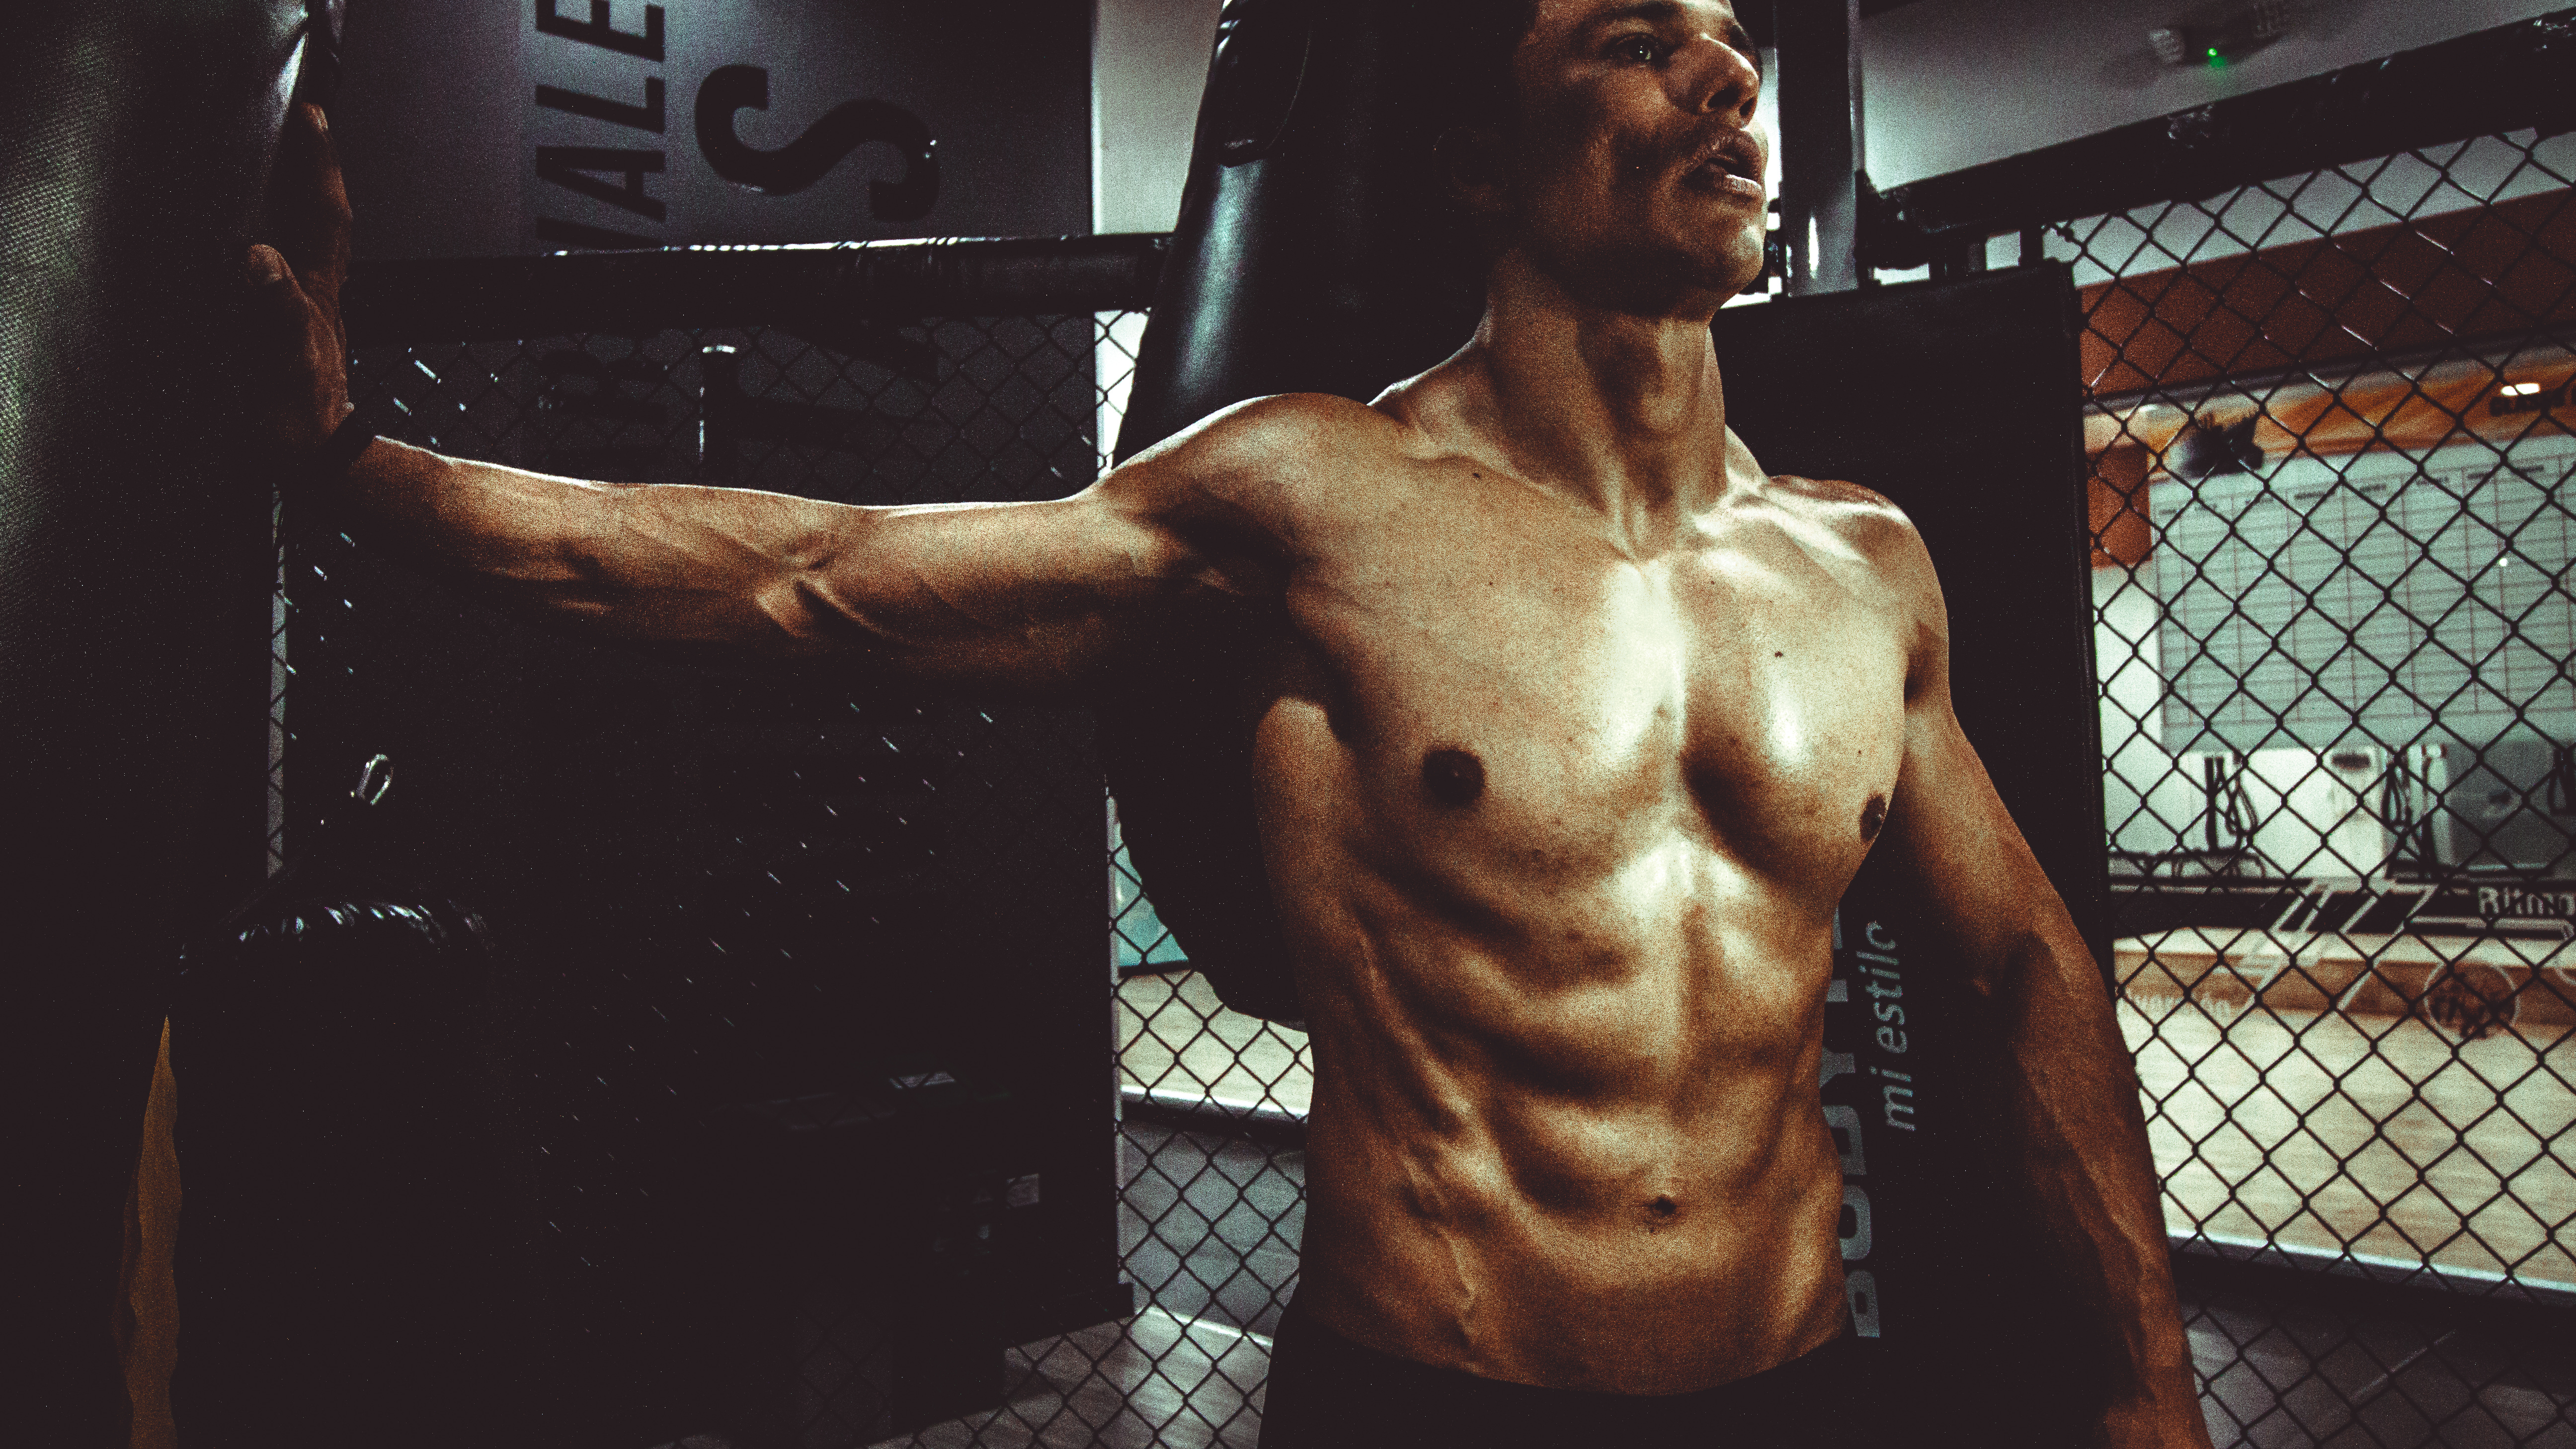 Is body weight training effective for muscle growth? - Exercise Right